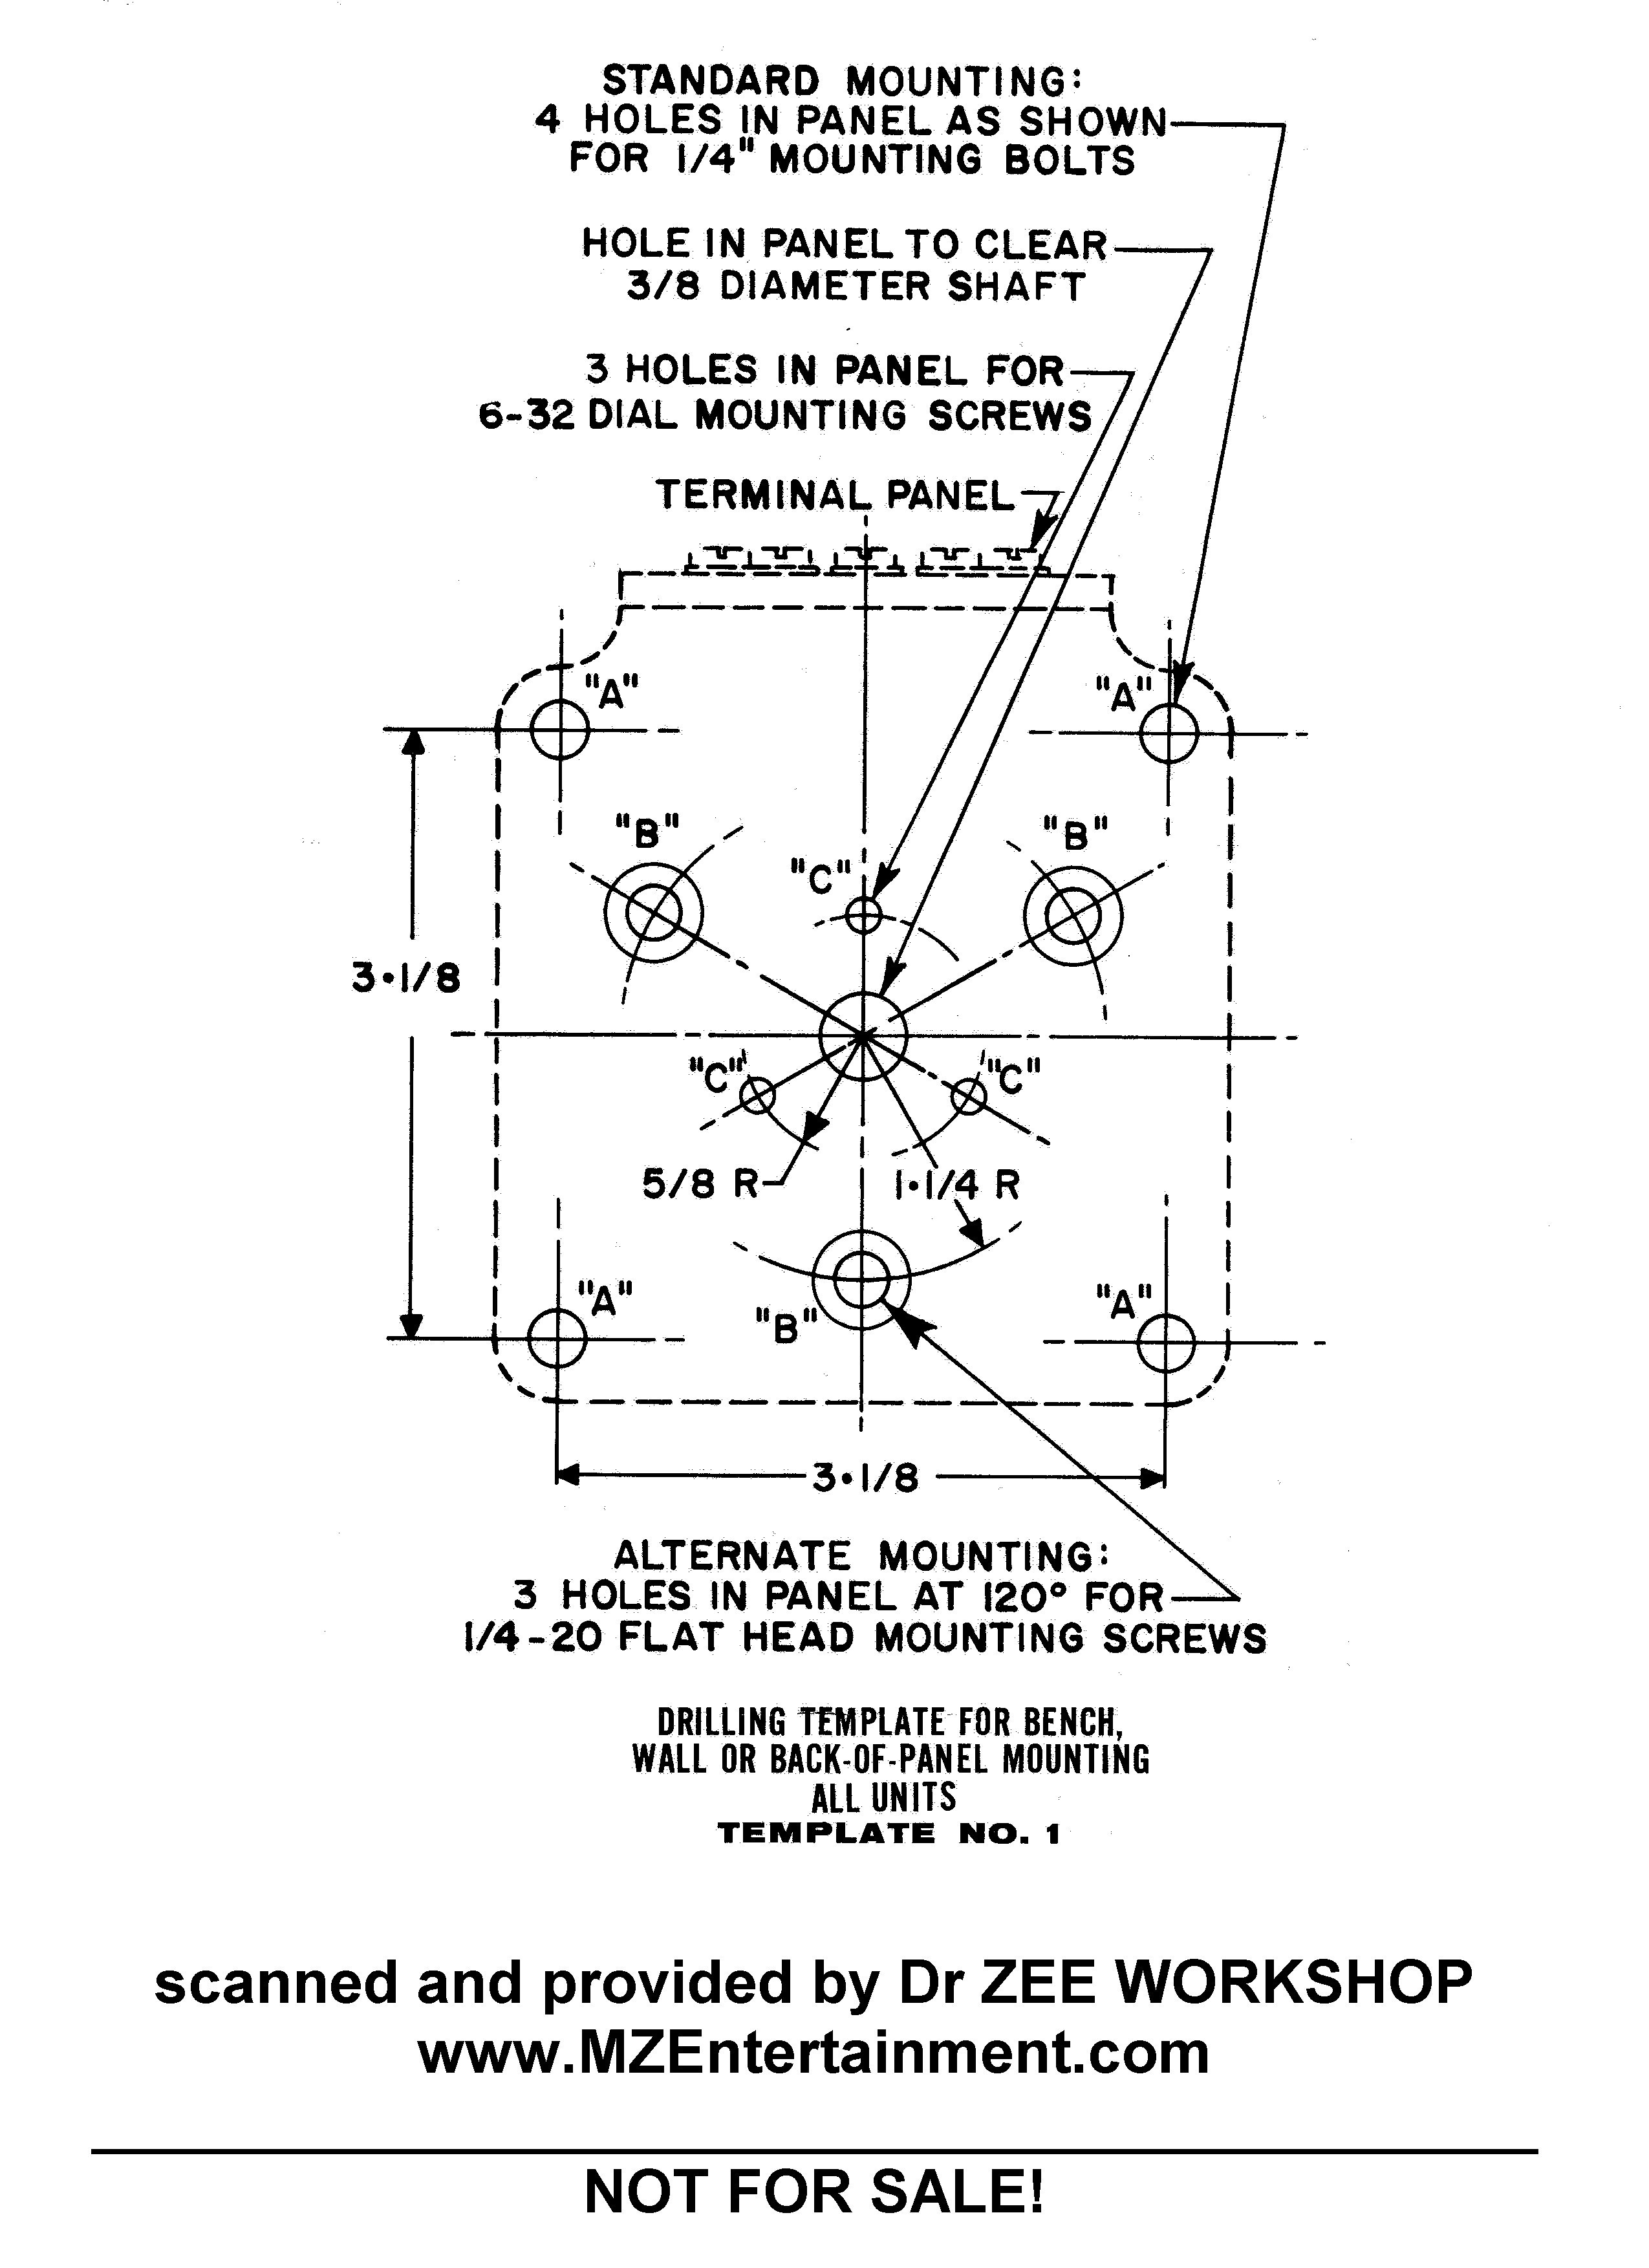 powerstat wiring diagram Collection-Wiring Diagram for Auto Transformers Valid Powerstat Variable Autotransformer Wiring Diagram 7-m